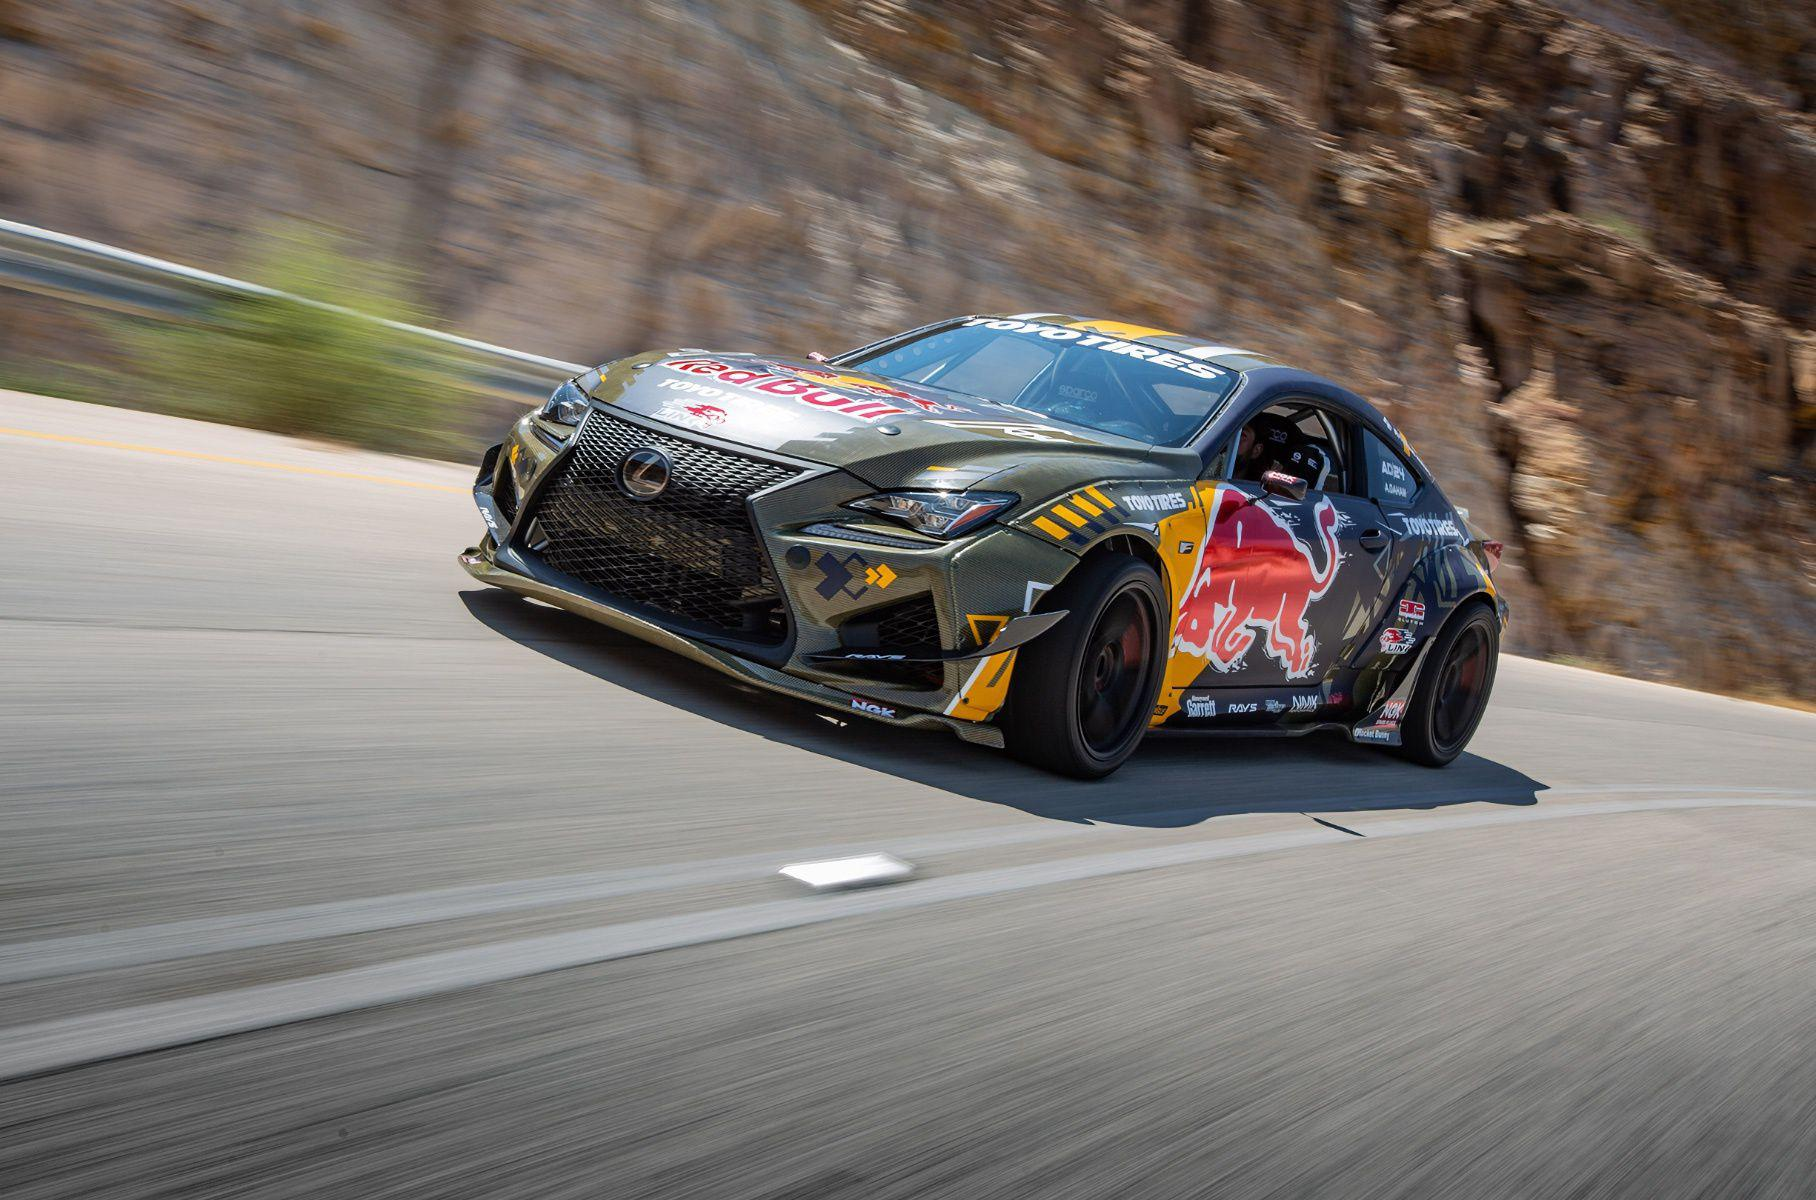 The Al-Futtaim Lexus showroom in the United Arab Emirates has built a unique and powerful drift car on the RC F chassis. Ahmad Daham, the most famous professional drifter in the Middle East, helped create the vehicle which is now up for grabs.